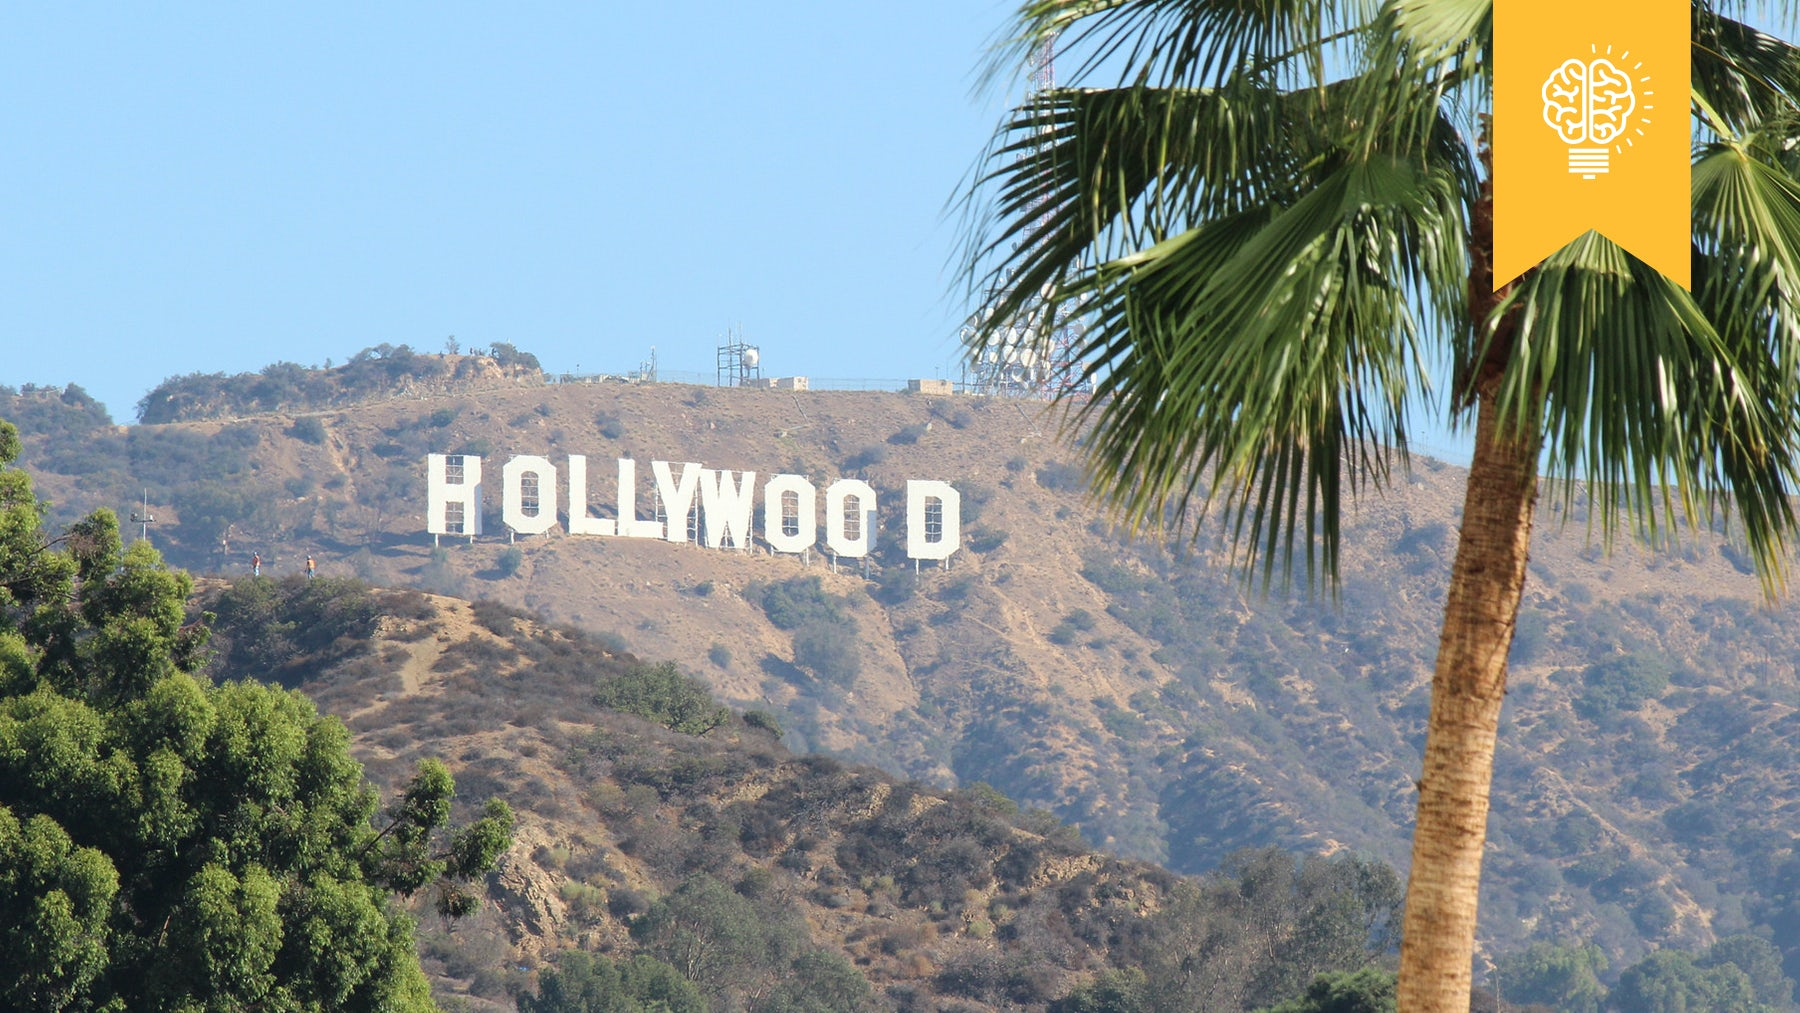 The Hollywood hills | Source: Flickr